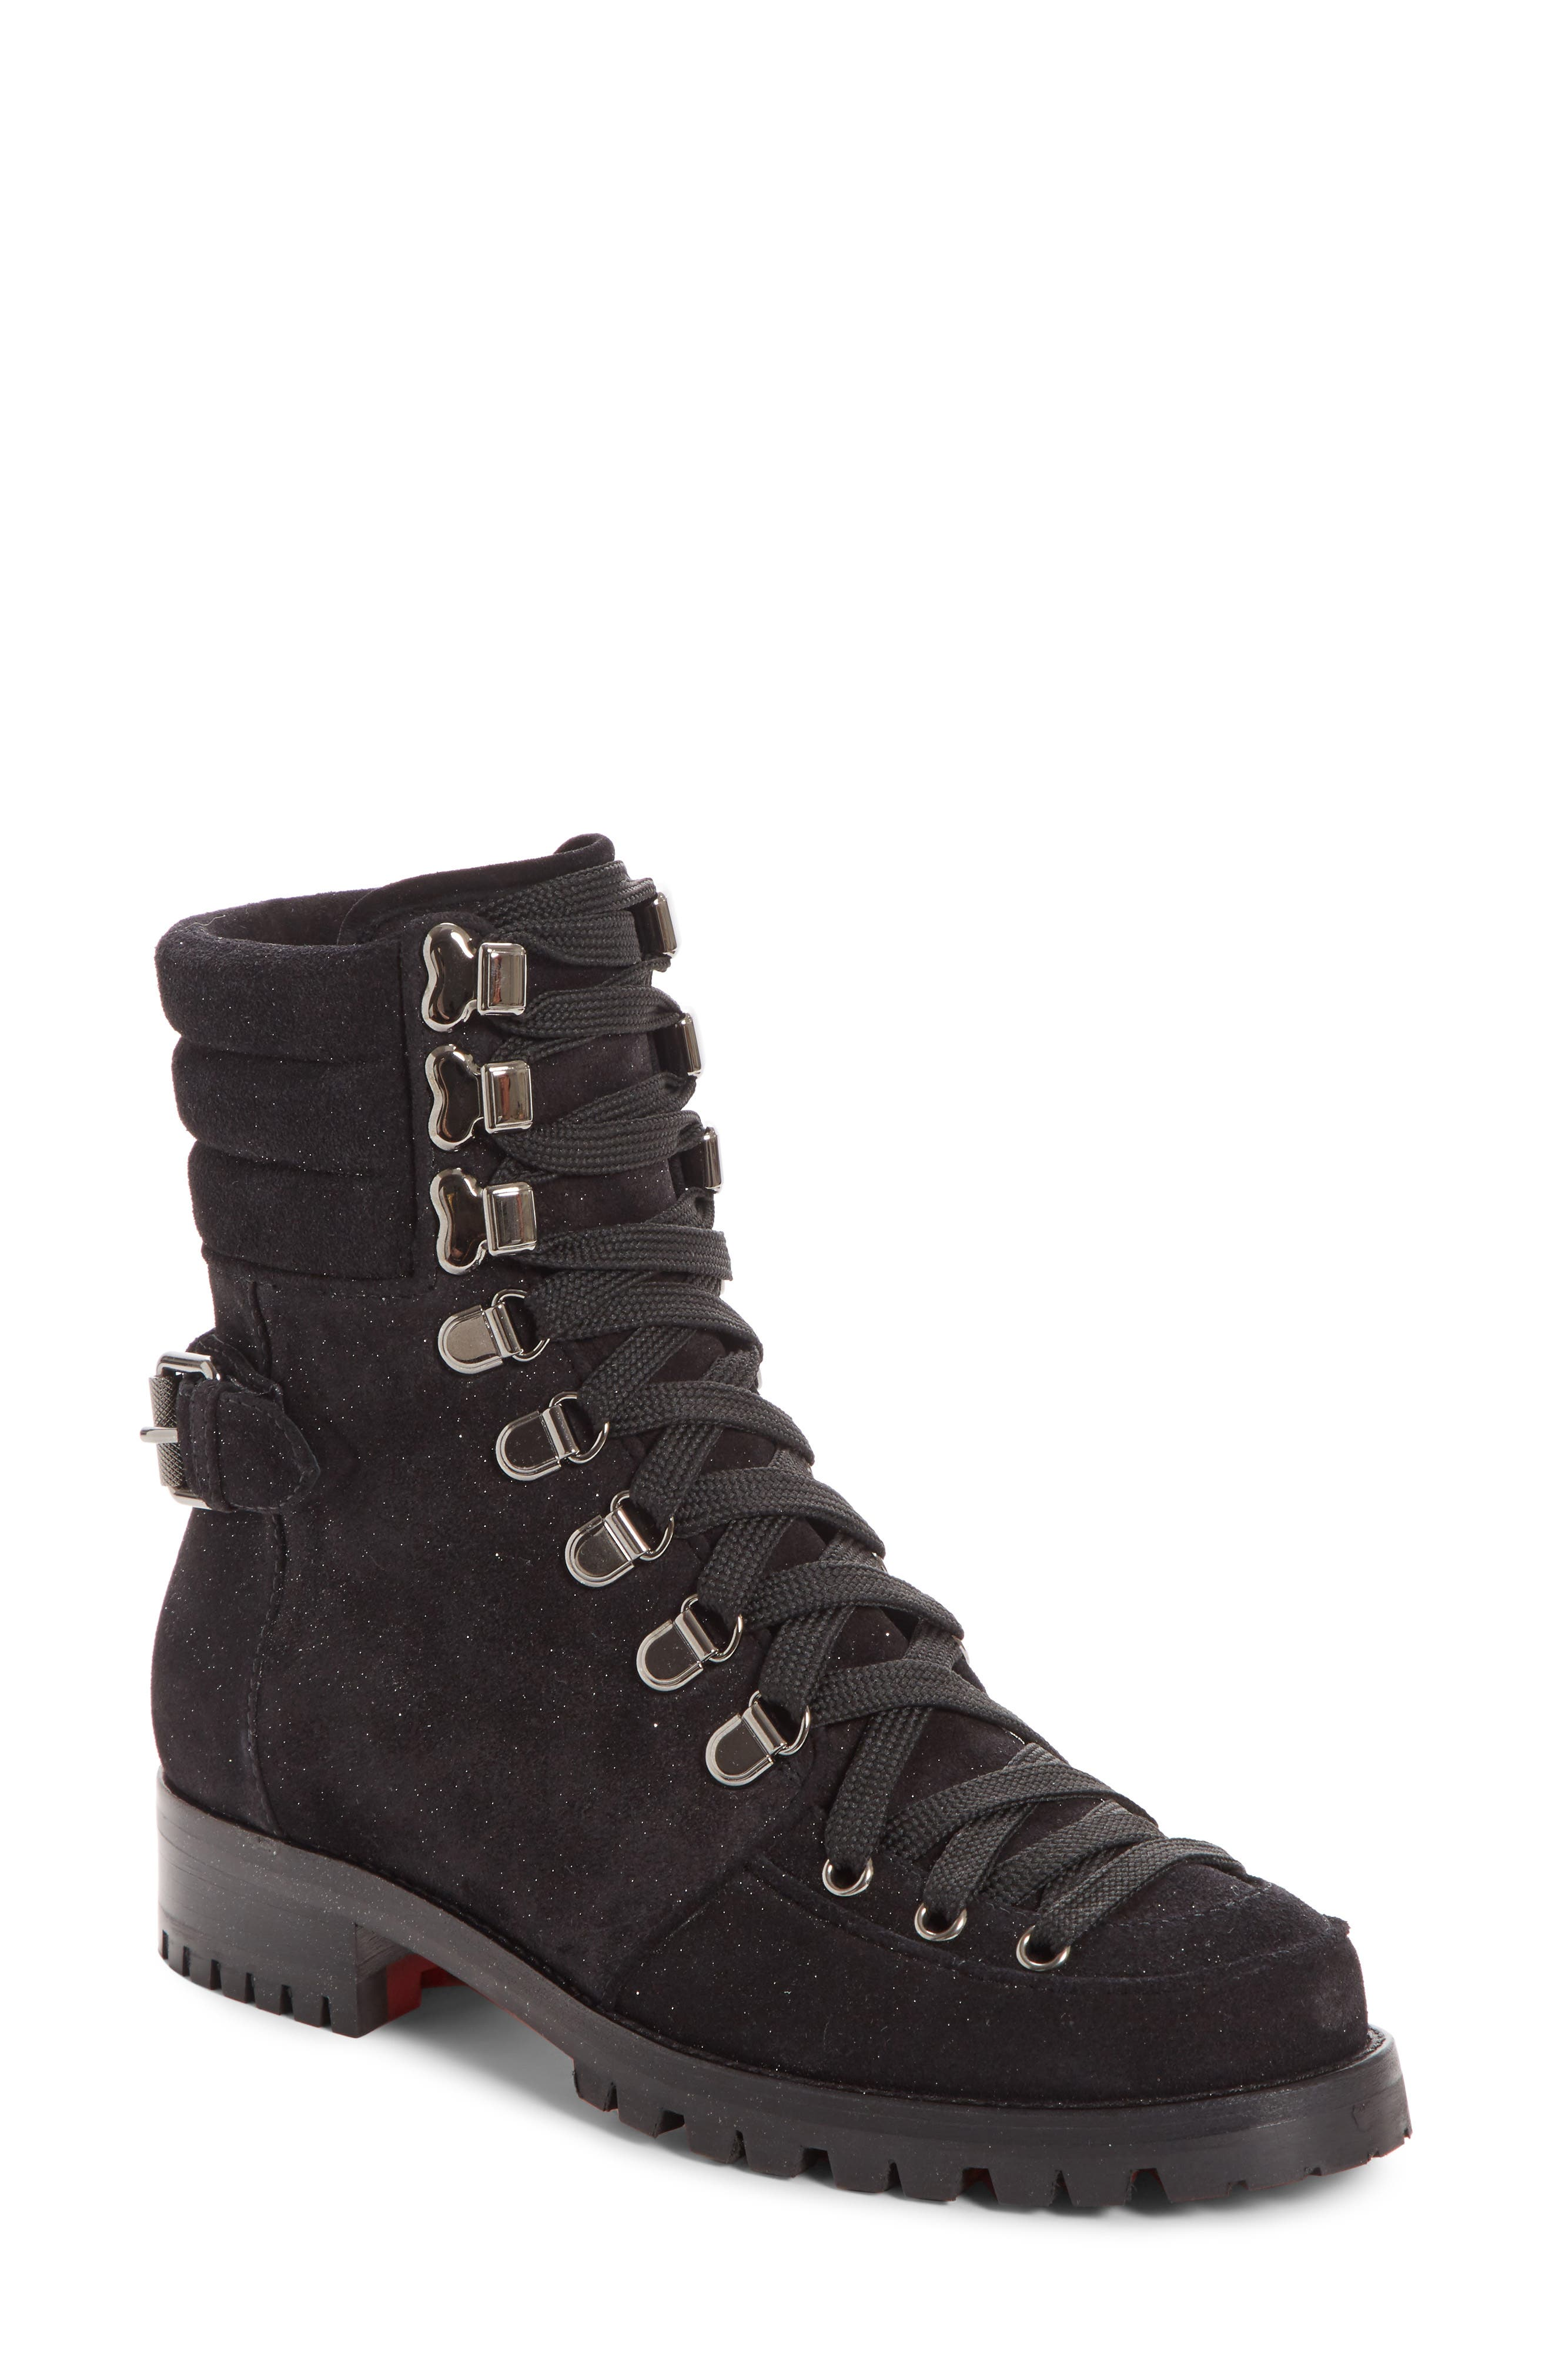 Christian Louboutin Who Runs Combat Boot